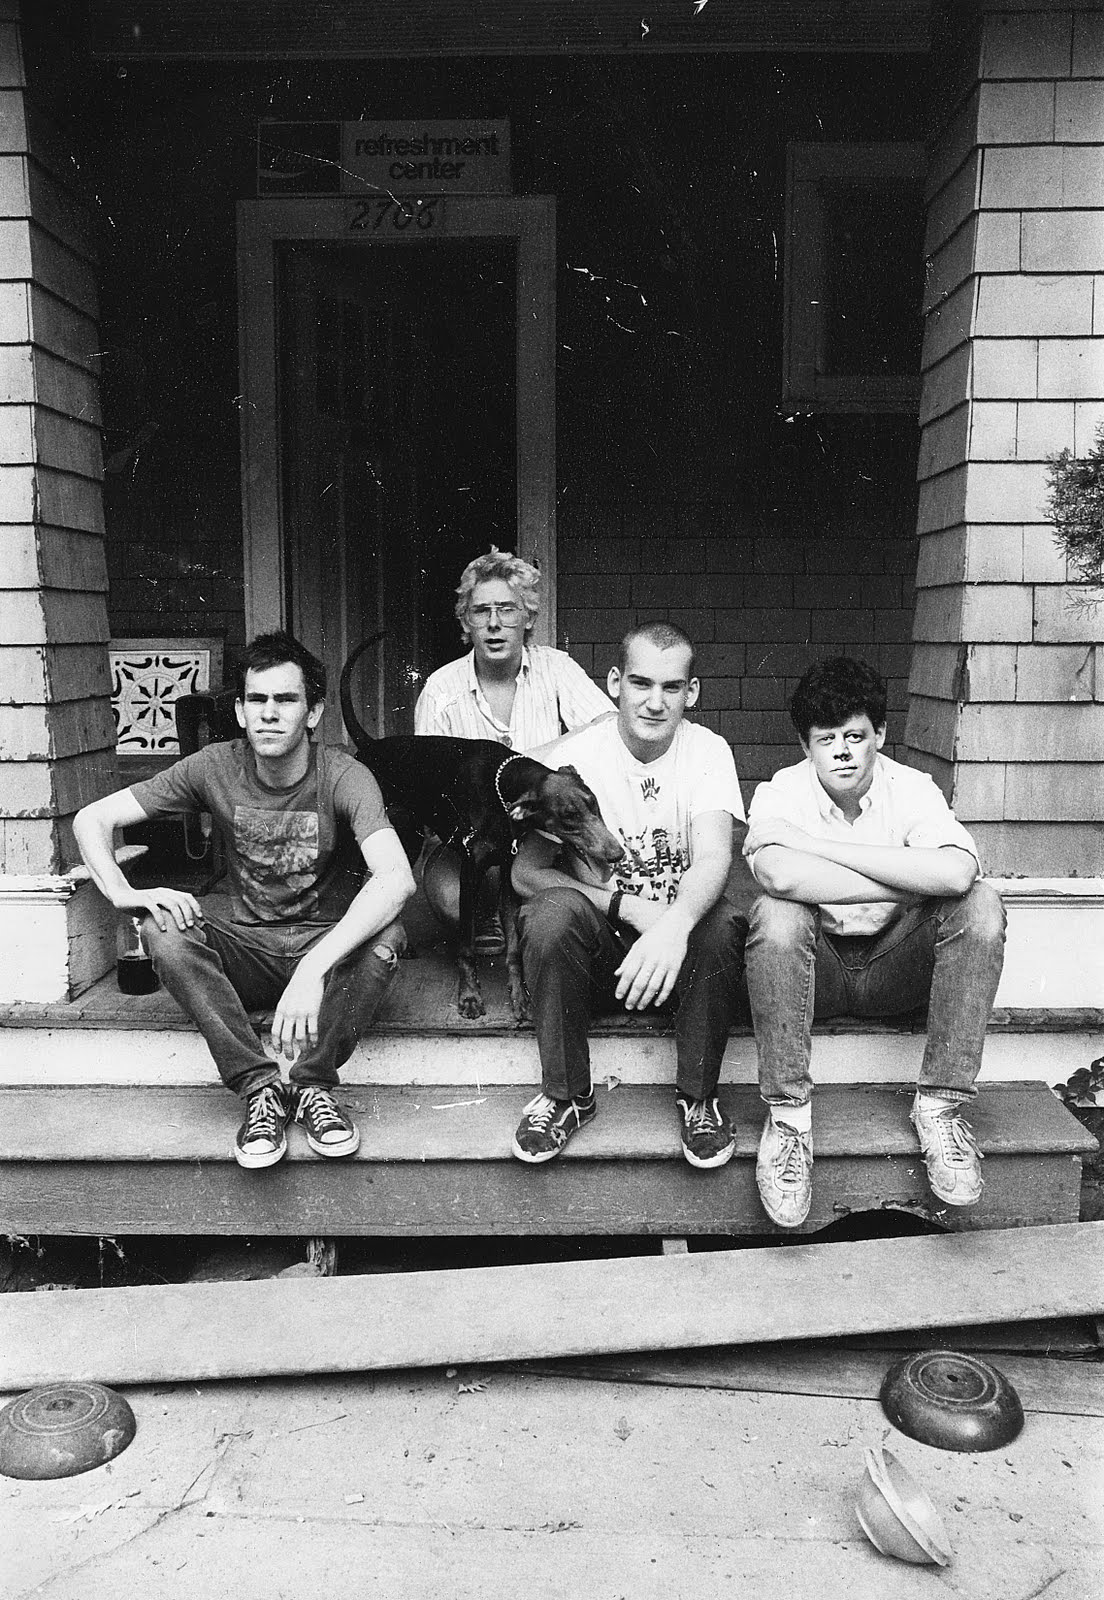 Minor Threat and Susie on Dischord House front porch, 1982 by Rebecca Hammel